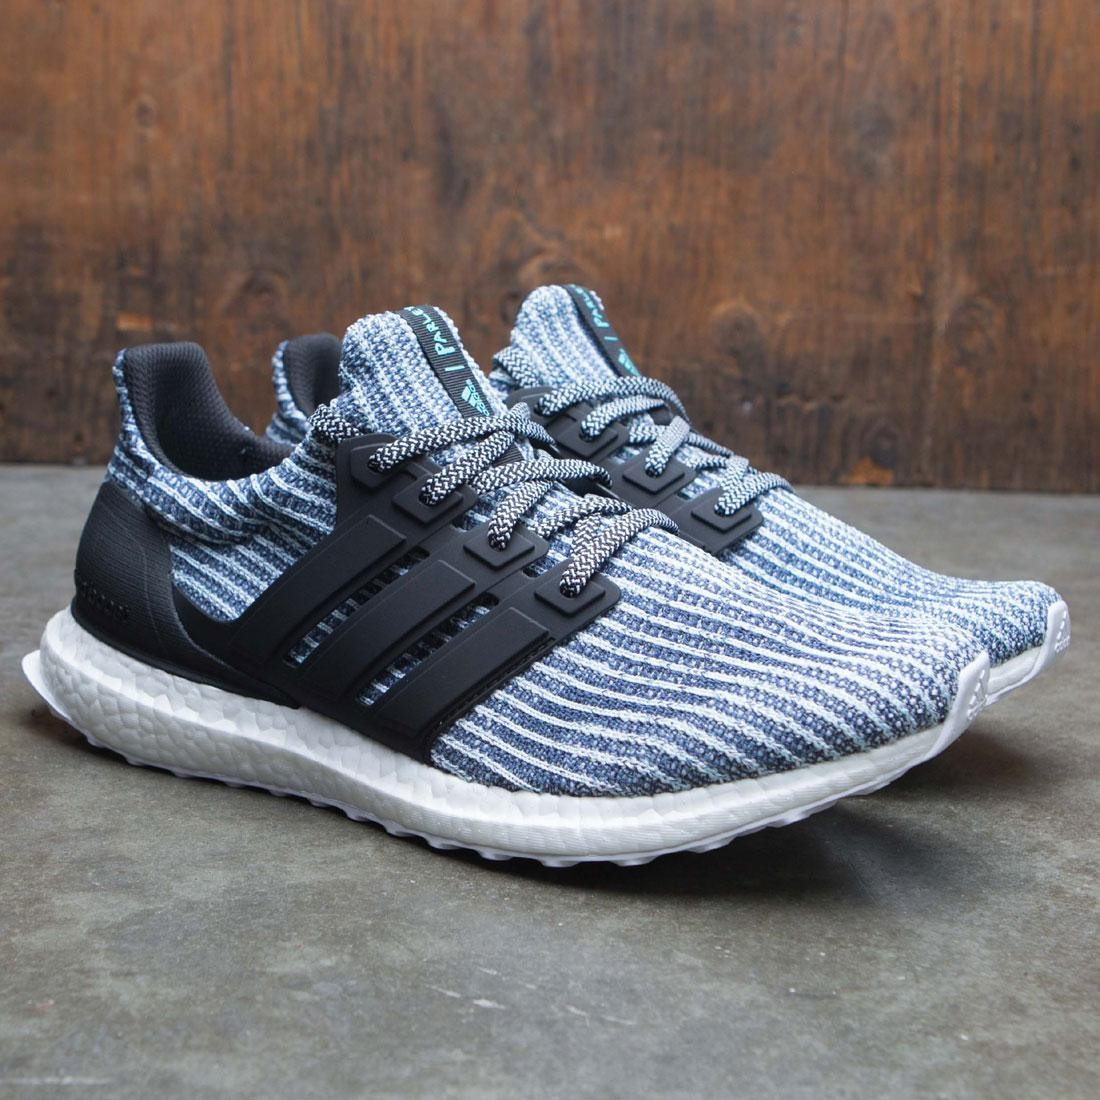 new product b70c0 9d7aa Adidas Men UltraBOOST Parley (white / carbon / blue spirit)